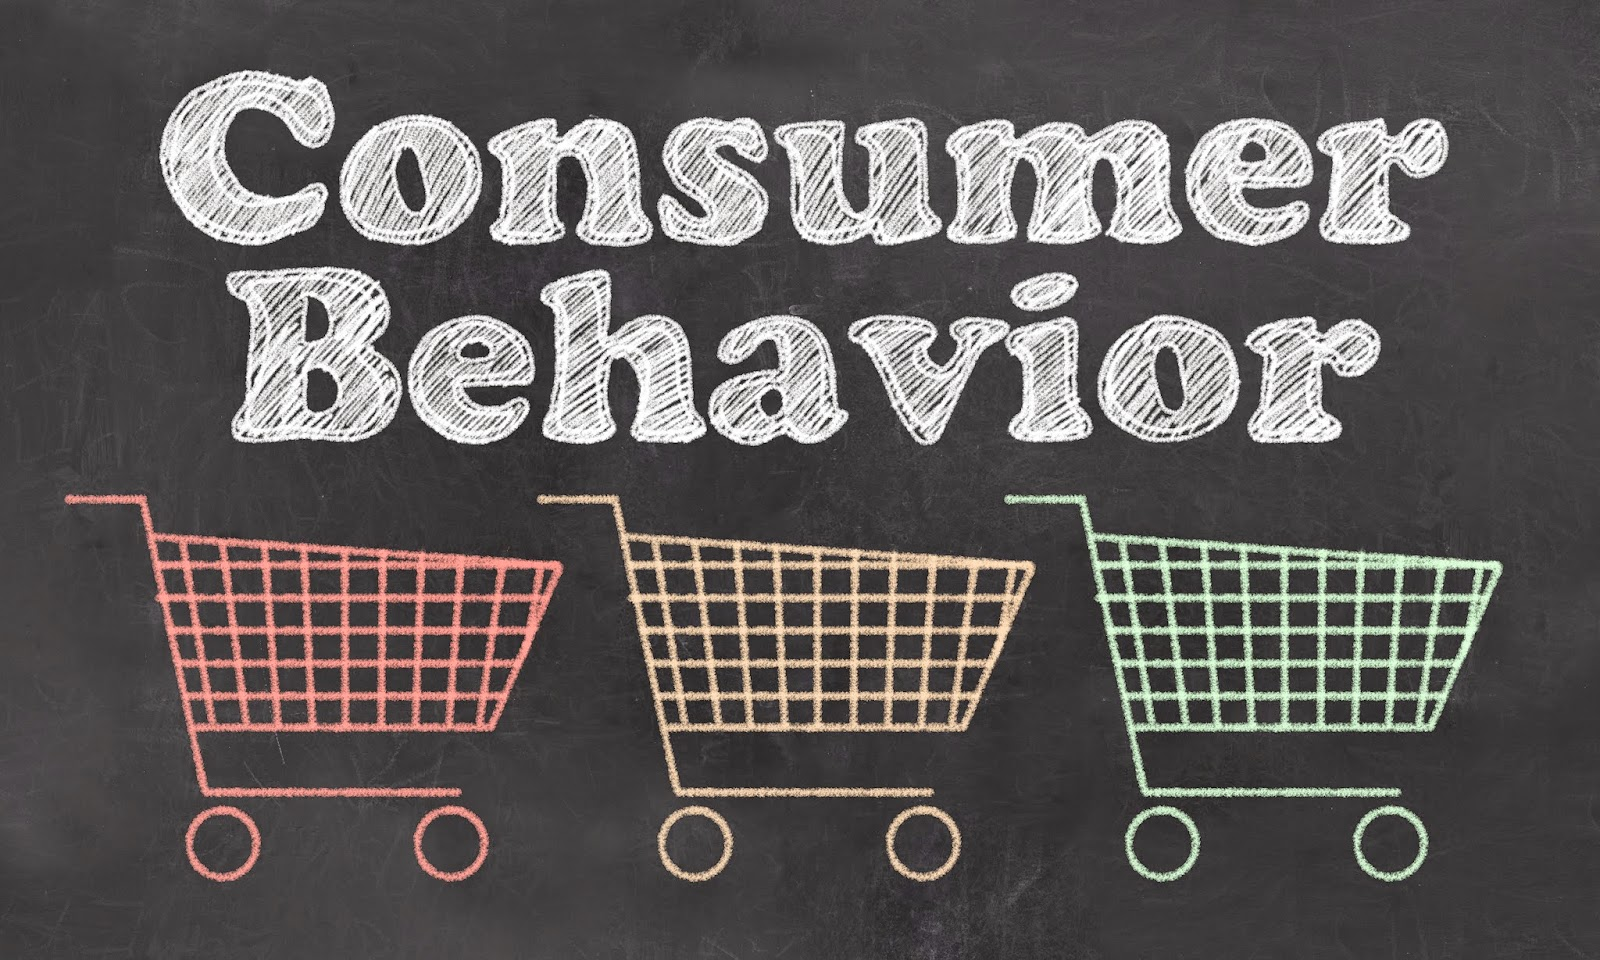 consumer behavior towards ready made garments Optimism appears to have rebounded after a period of low consumer confidence and sluggish consumer spending growth the growing number of single-person households is driving increased demand for products catering to single consumers, such as single-serve ready meals and other packaged food, and this is expected to continue in coming years.